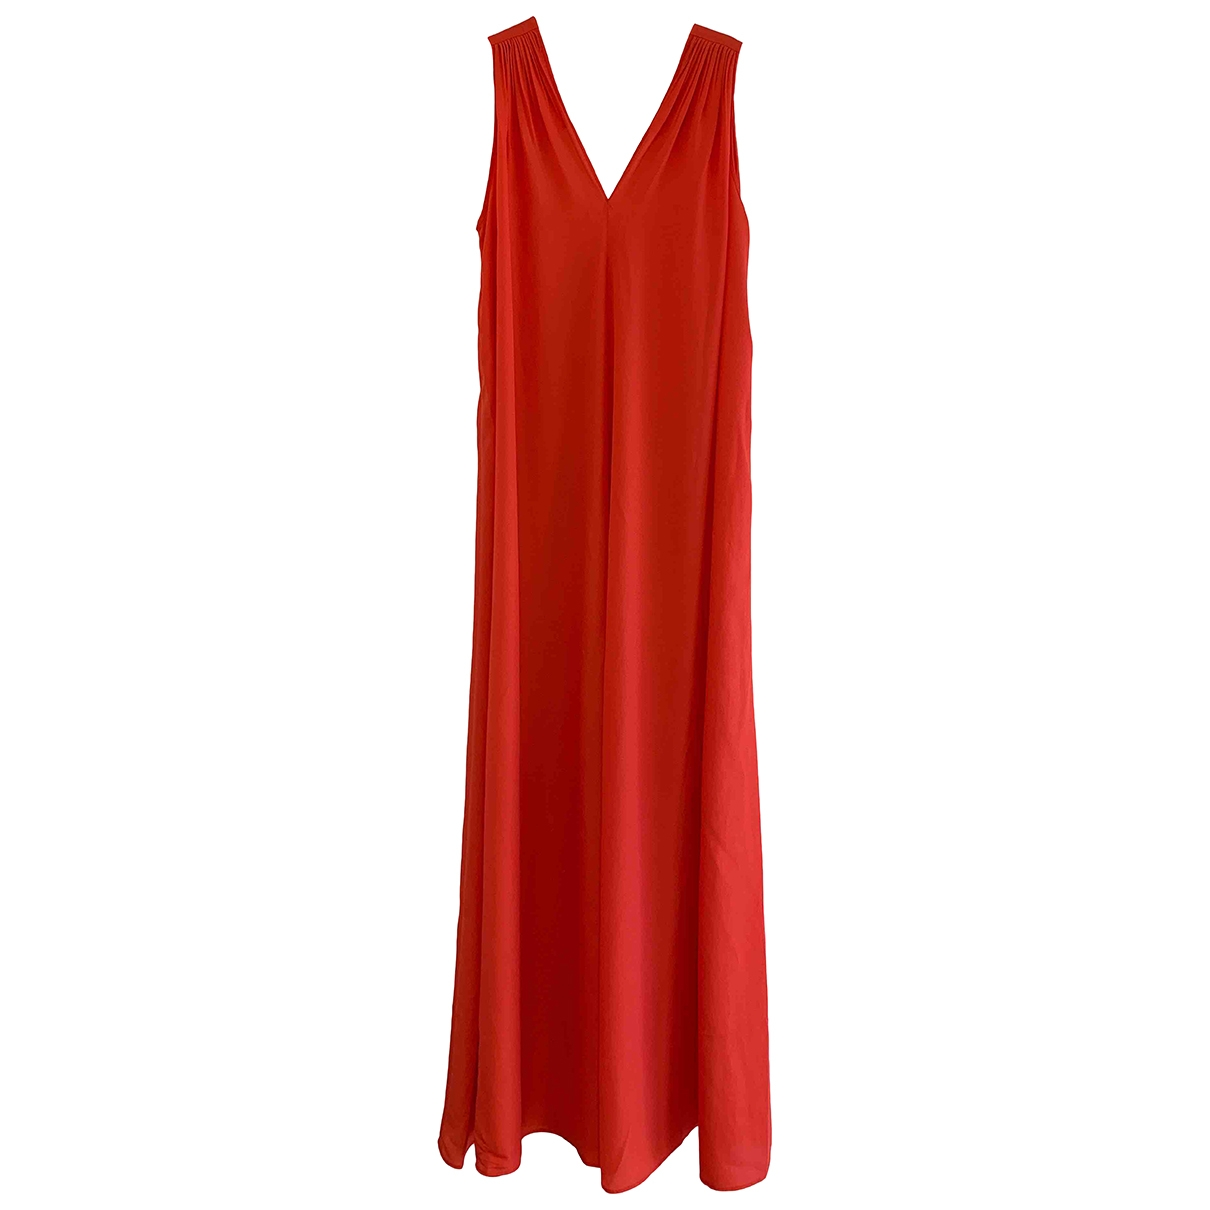 Pinko \N Orange dress for Women 40 IT